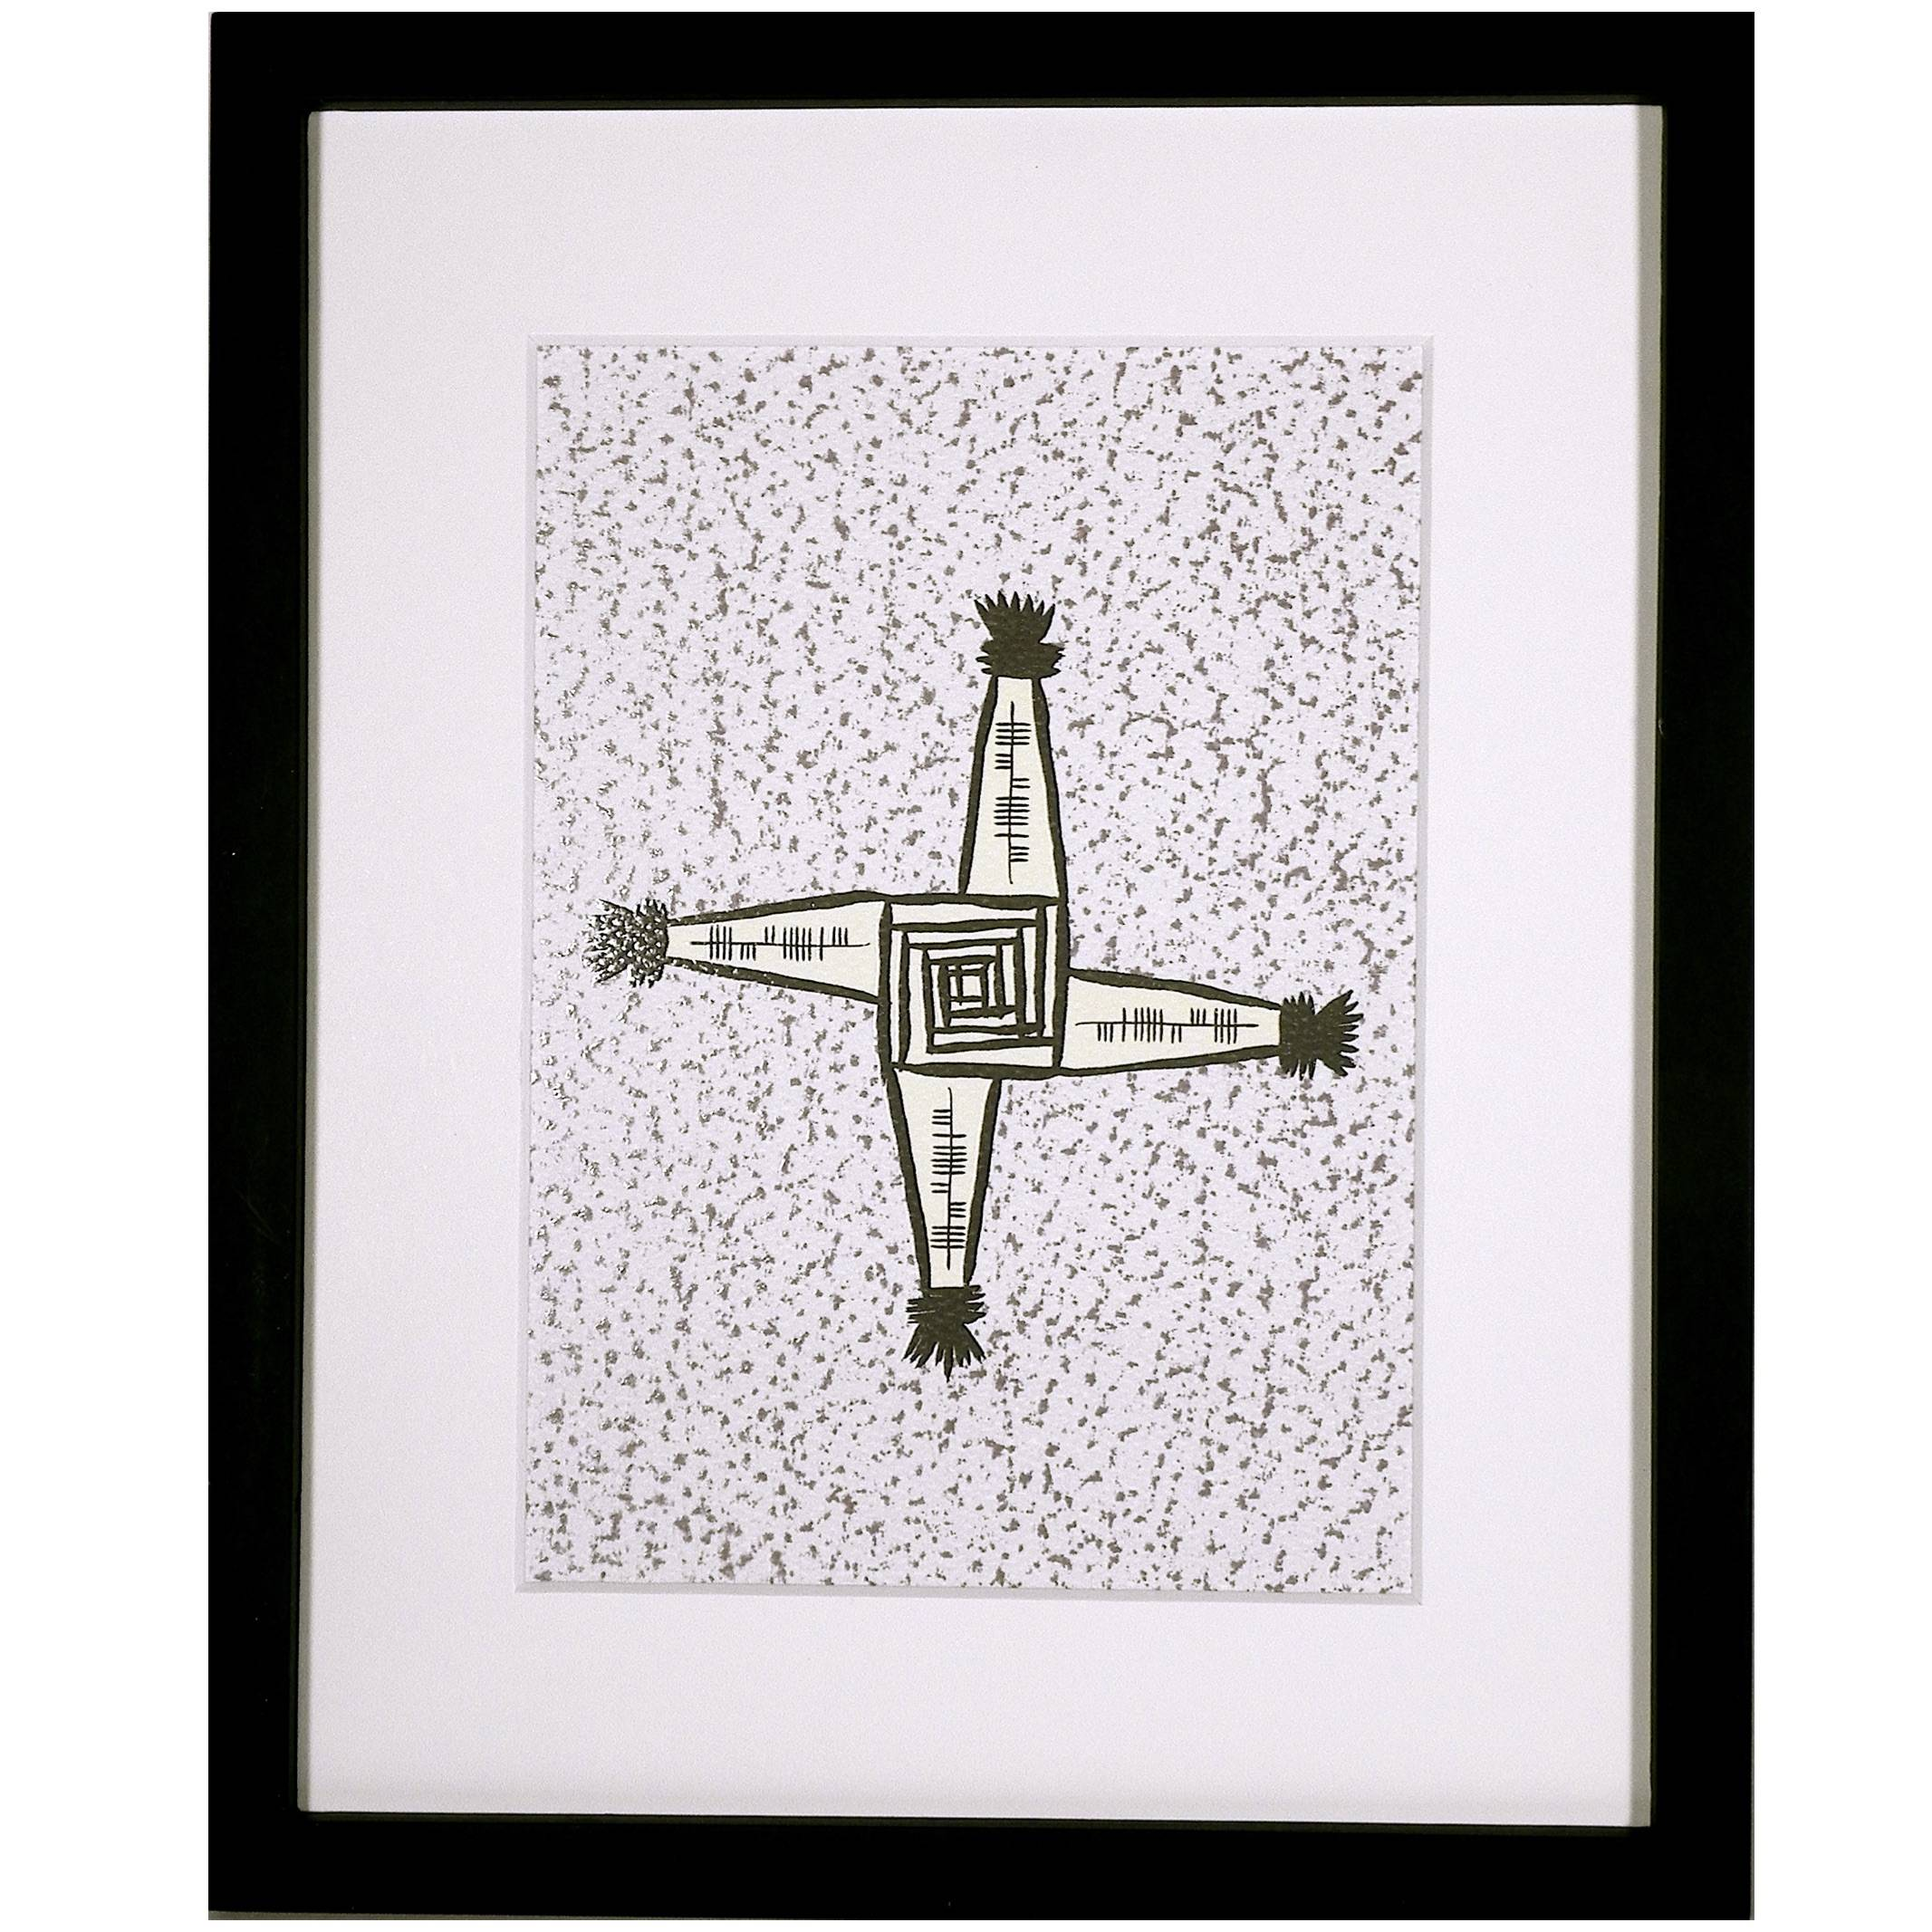 imbolc brigid's cross welcome fáilte framed irish celtic art